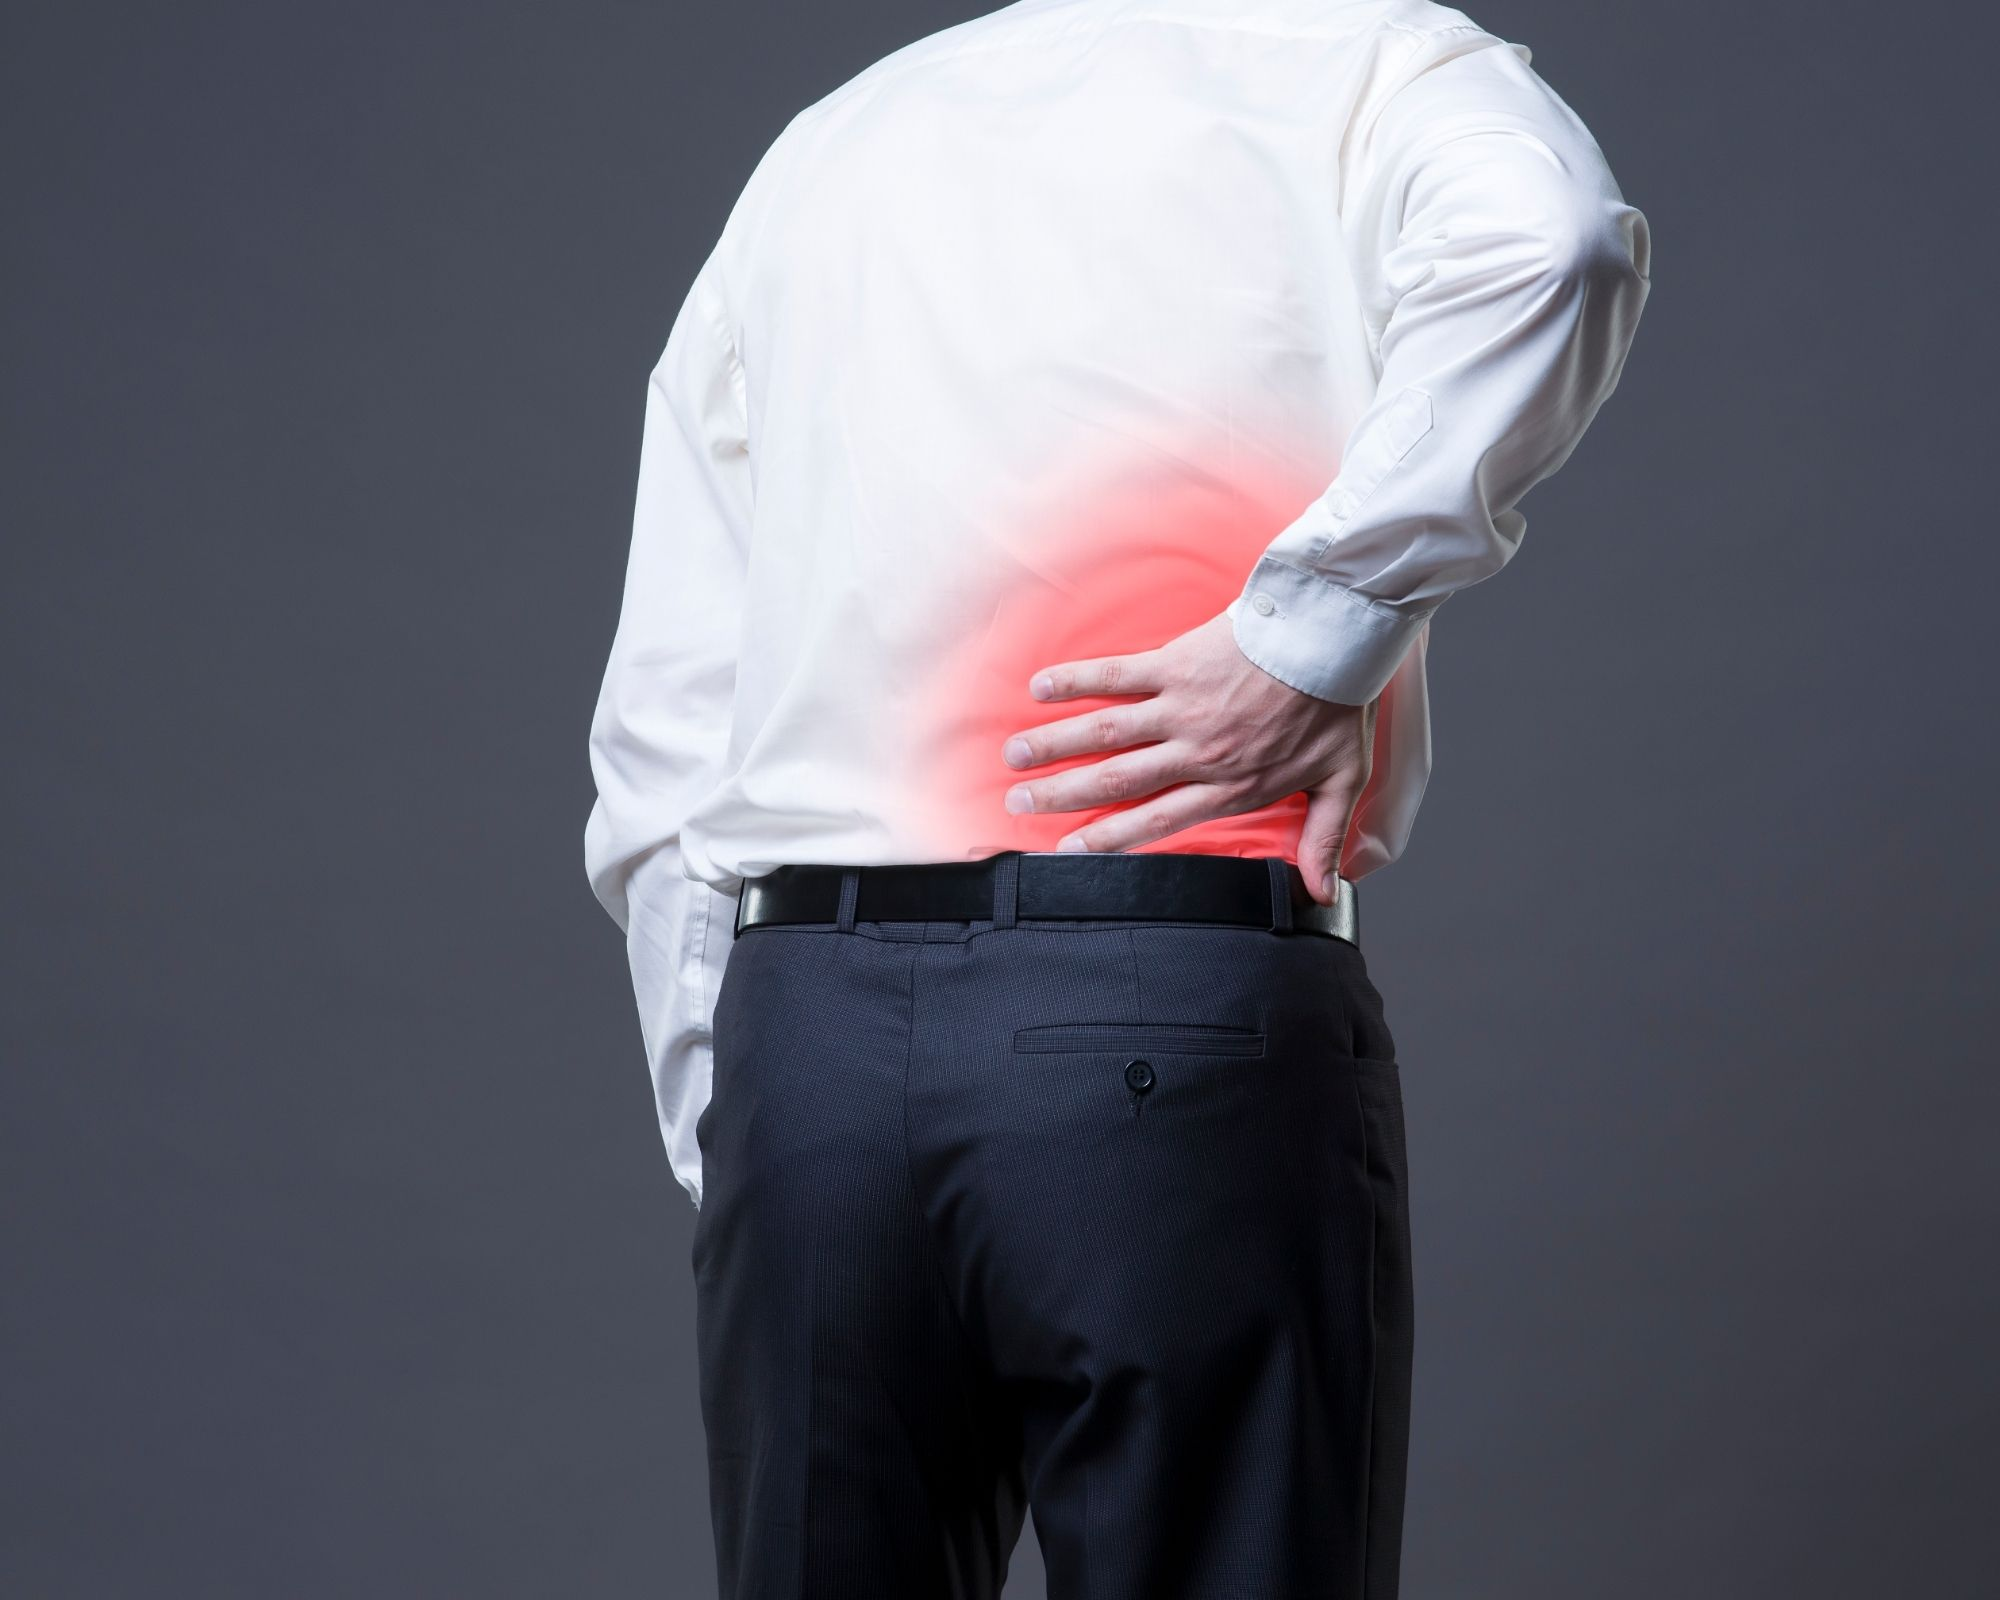 Back pain due to inflammation